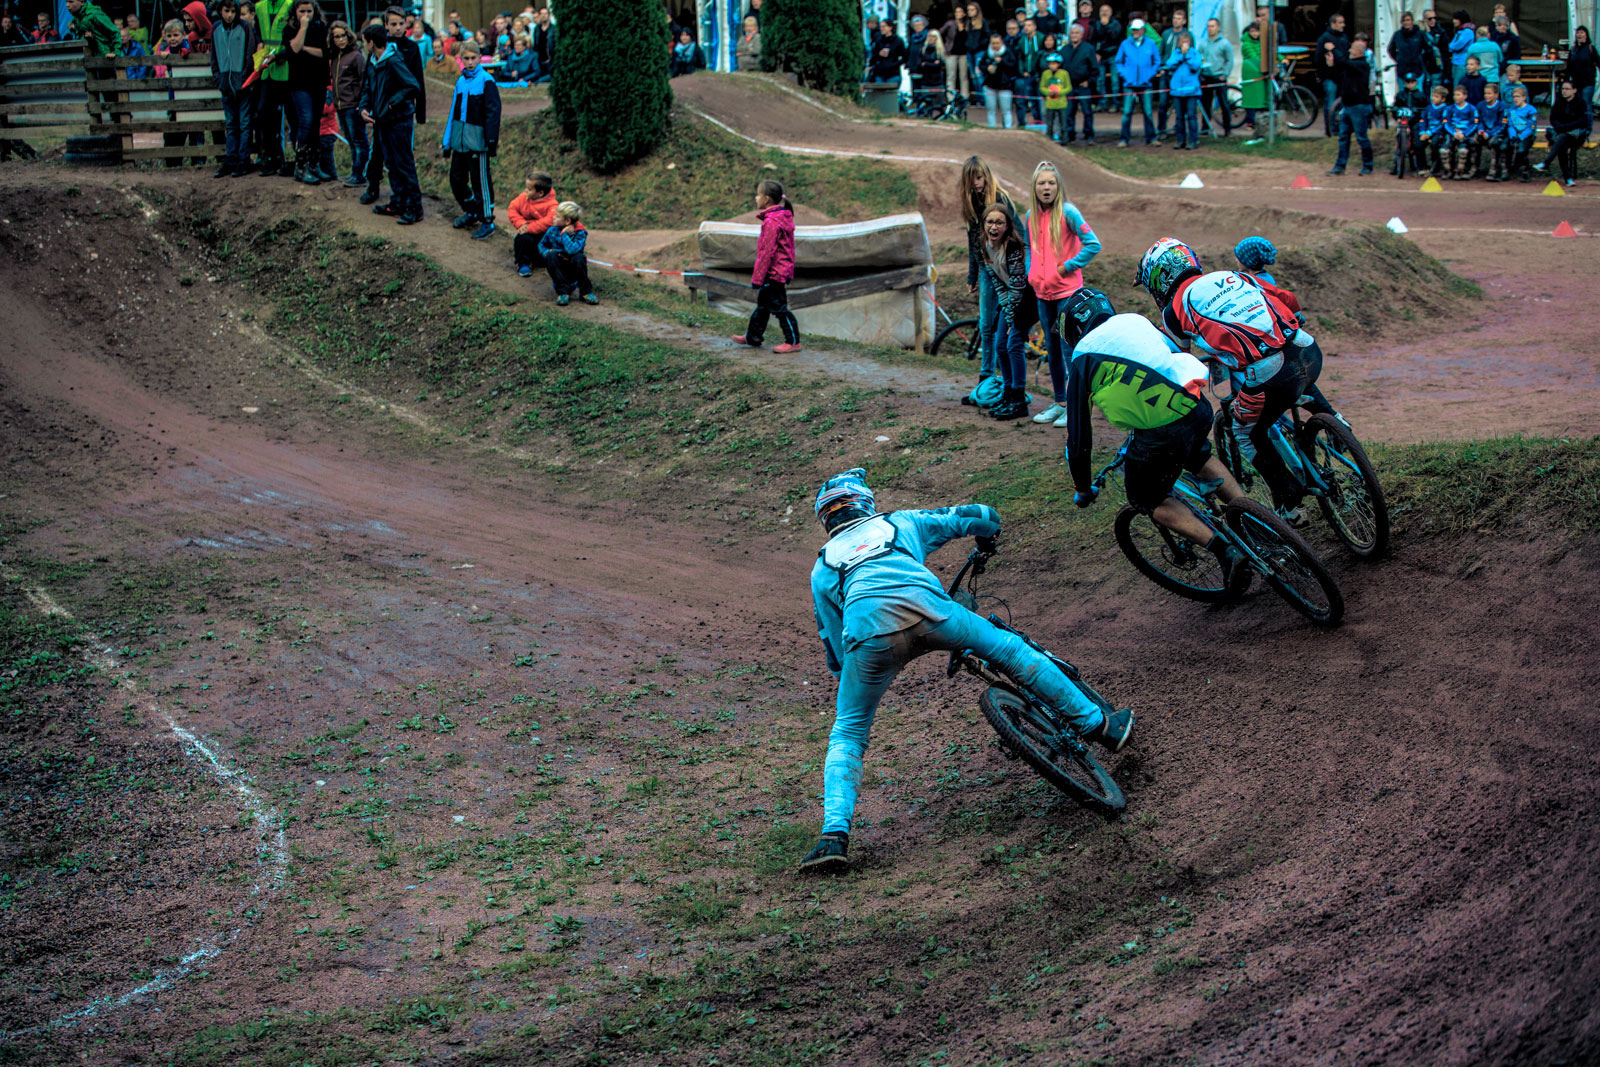 Big Action for all categories in the second turn in Wolfach - Photograher Florian G rtner - Canonite.ch